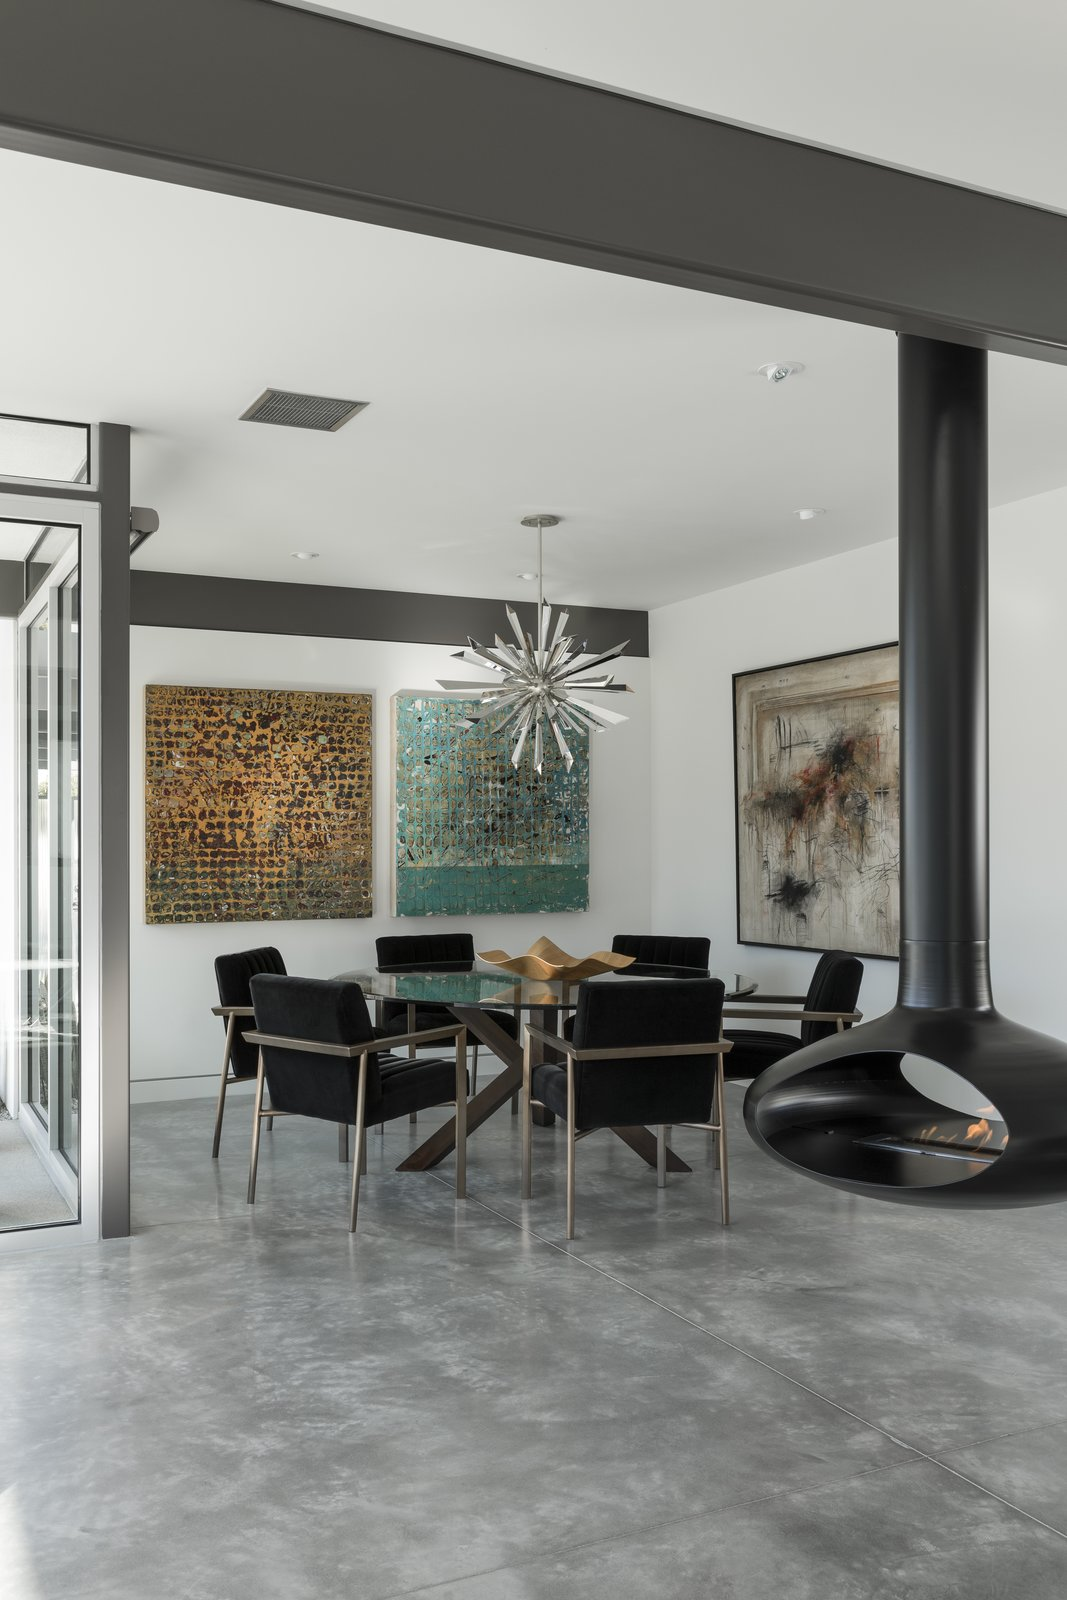 Dining, Concrete, Chair, Hanging, Table, and Ceiling Modern furnishings, a decorative metallic pendant, and colorful artwork decorate the dining space.  Dining Concrete Table Hanging Photos from The Last Donald Wexler–Designed Home Ever Built Asks $2.65M